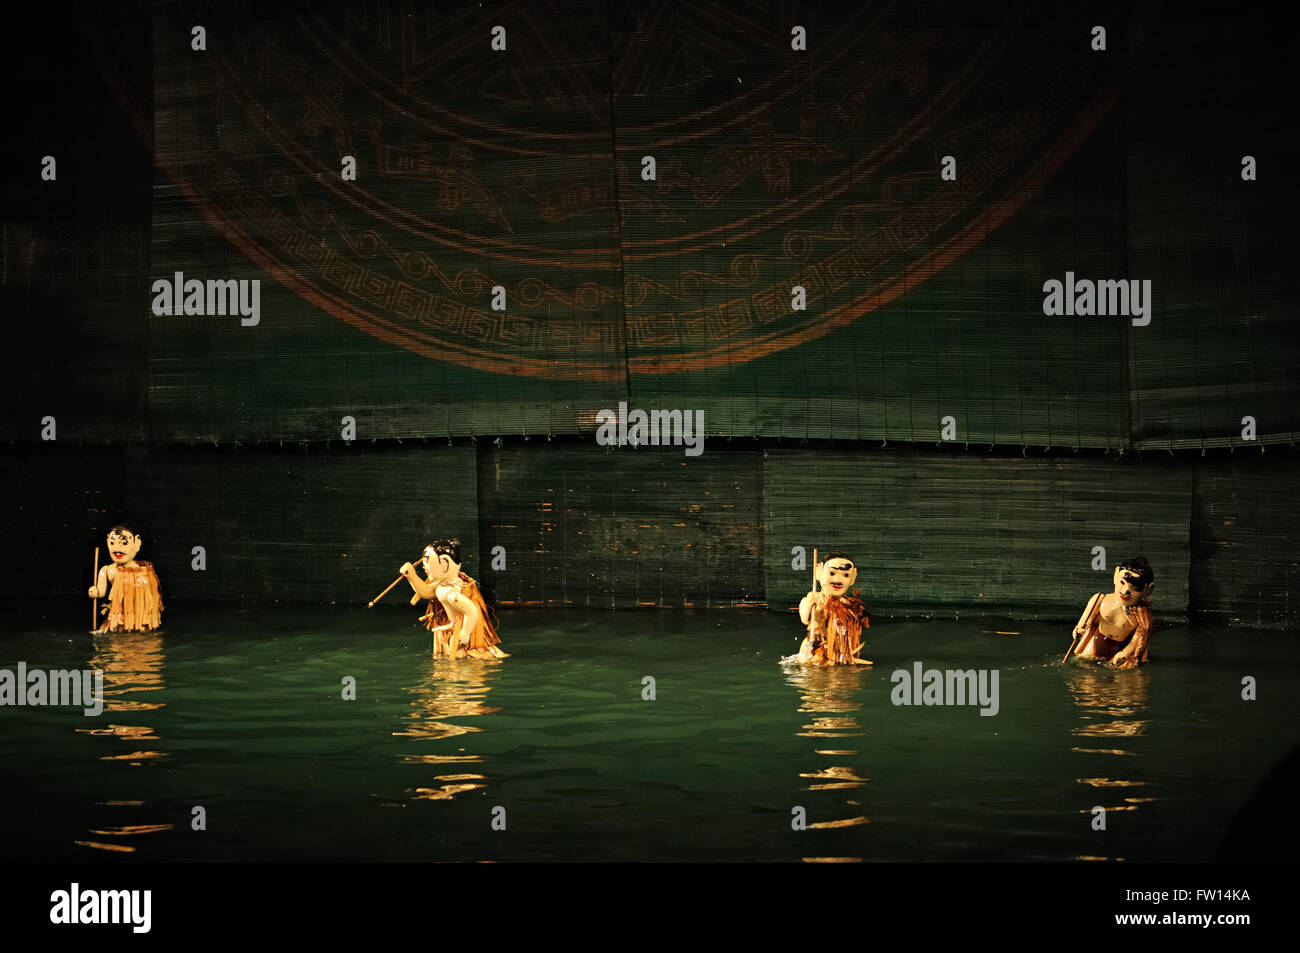 Thang Long Water Puppet Theatre in Hanoi, Vietnam Stock Photo